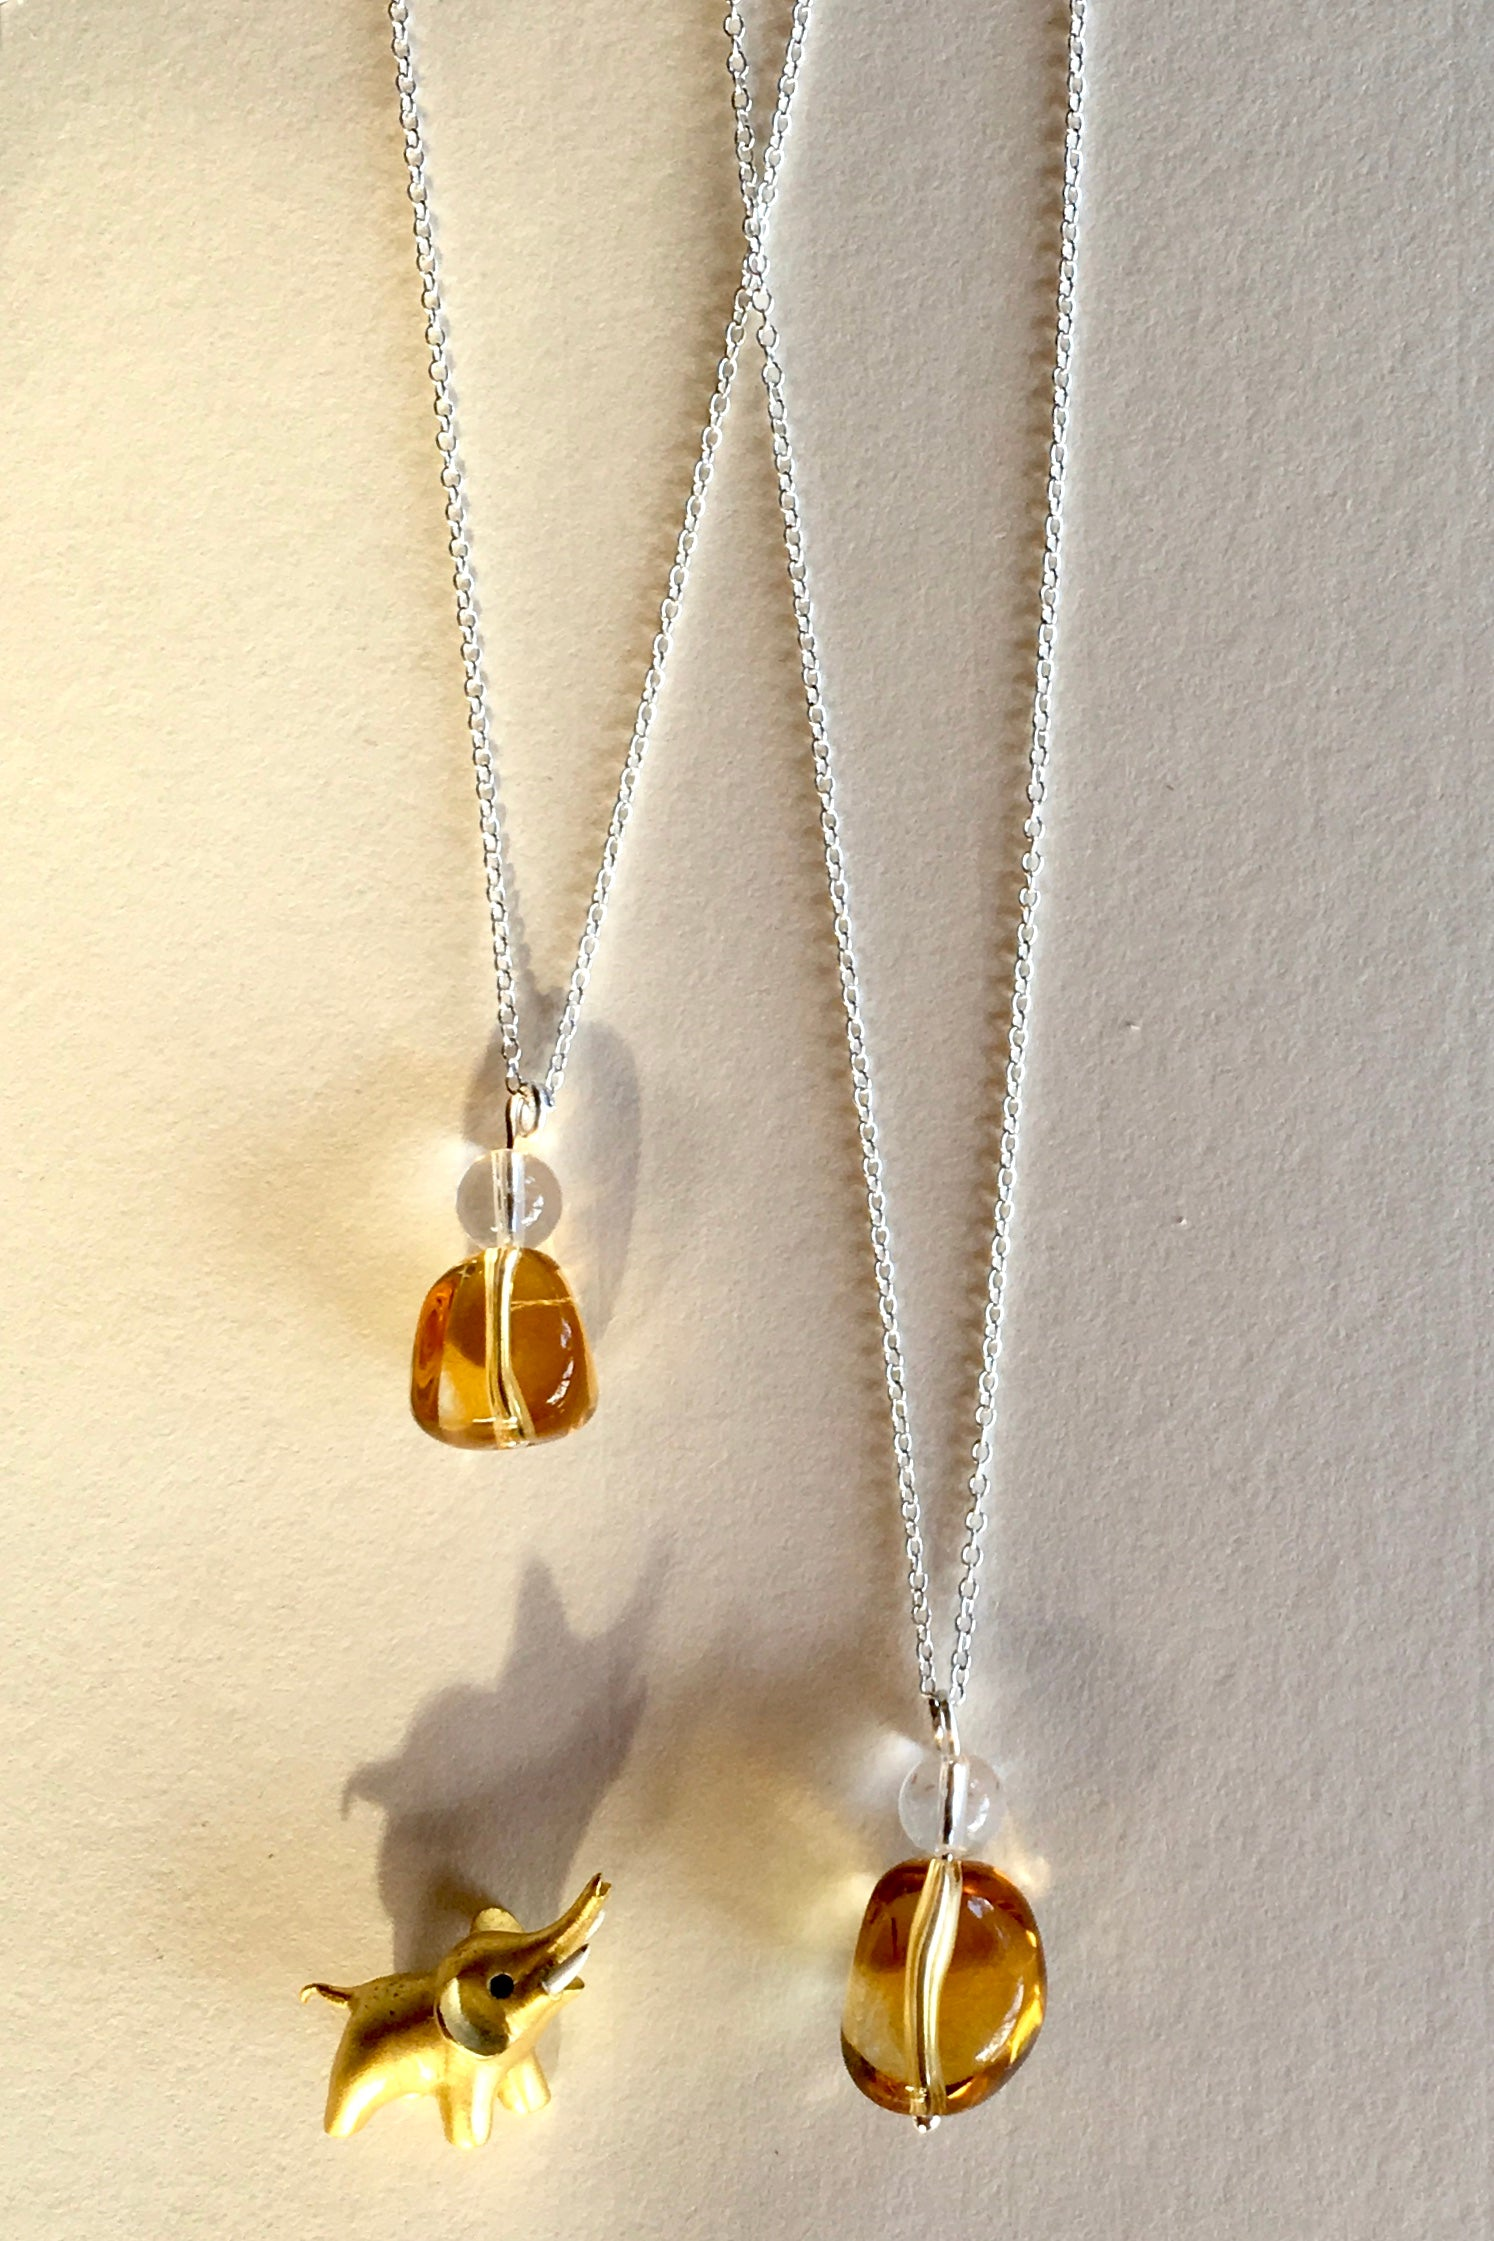 Pendant of Citrine with Rock Crystal has been cut 2.25cm to 2.5cm long total and tumble polished to reveal all the lovely golden tones hidden inside coming on silver chain.